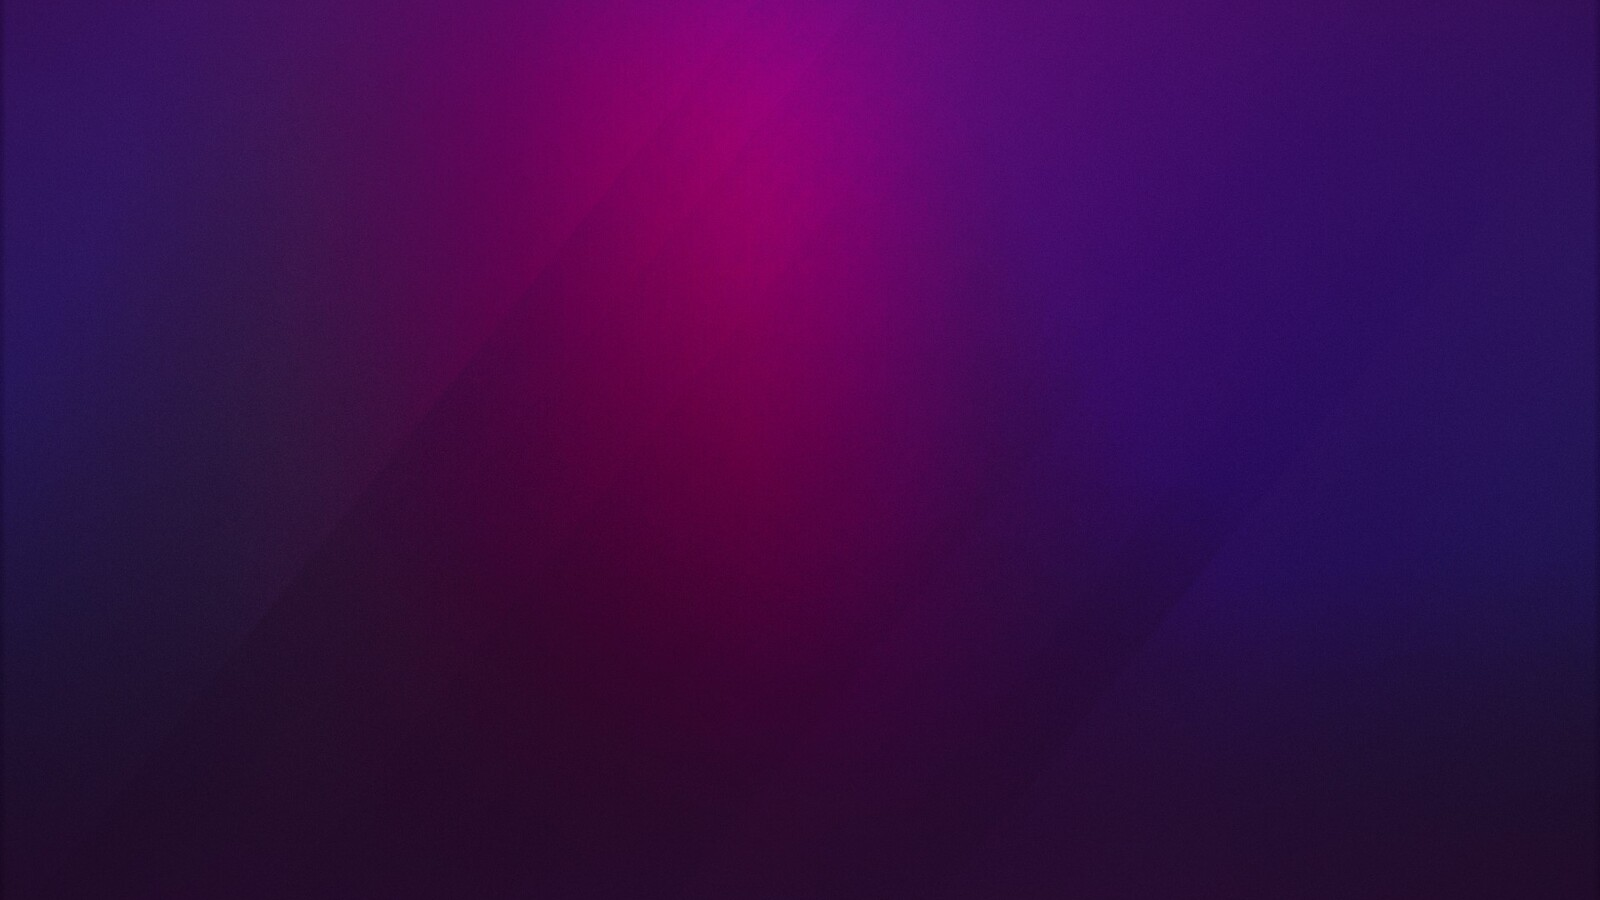 1600x900 Abstract Mix Colors 1600x900 Resolution Hd 4k